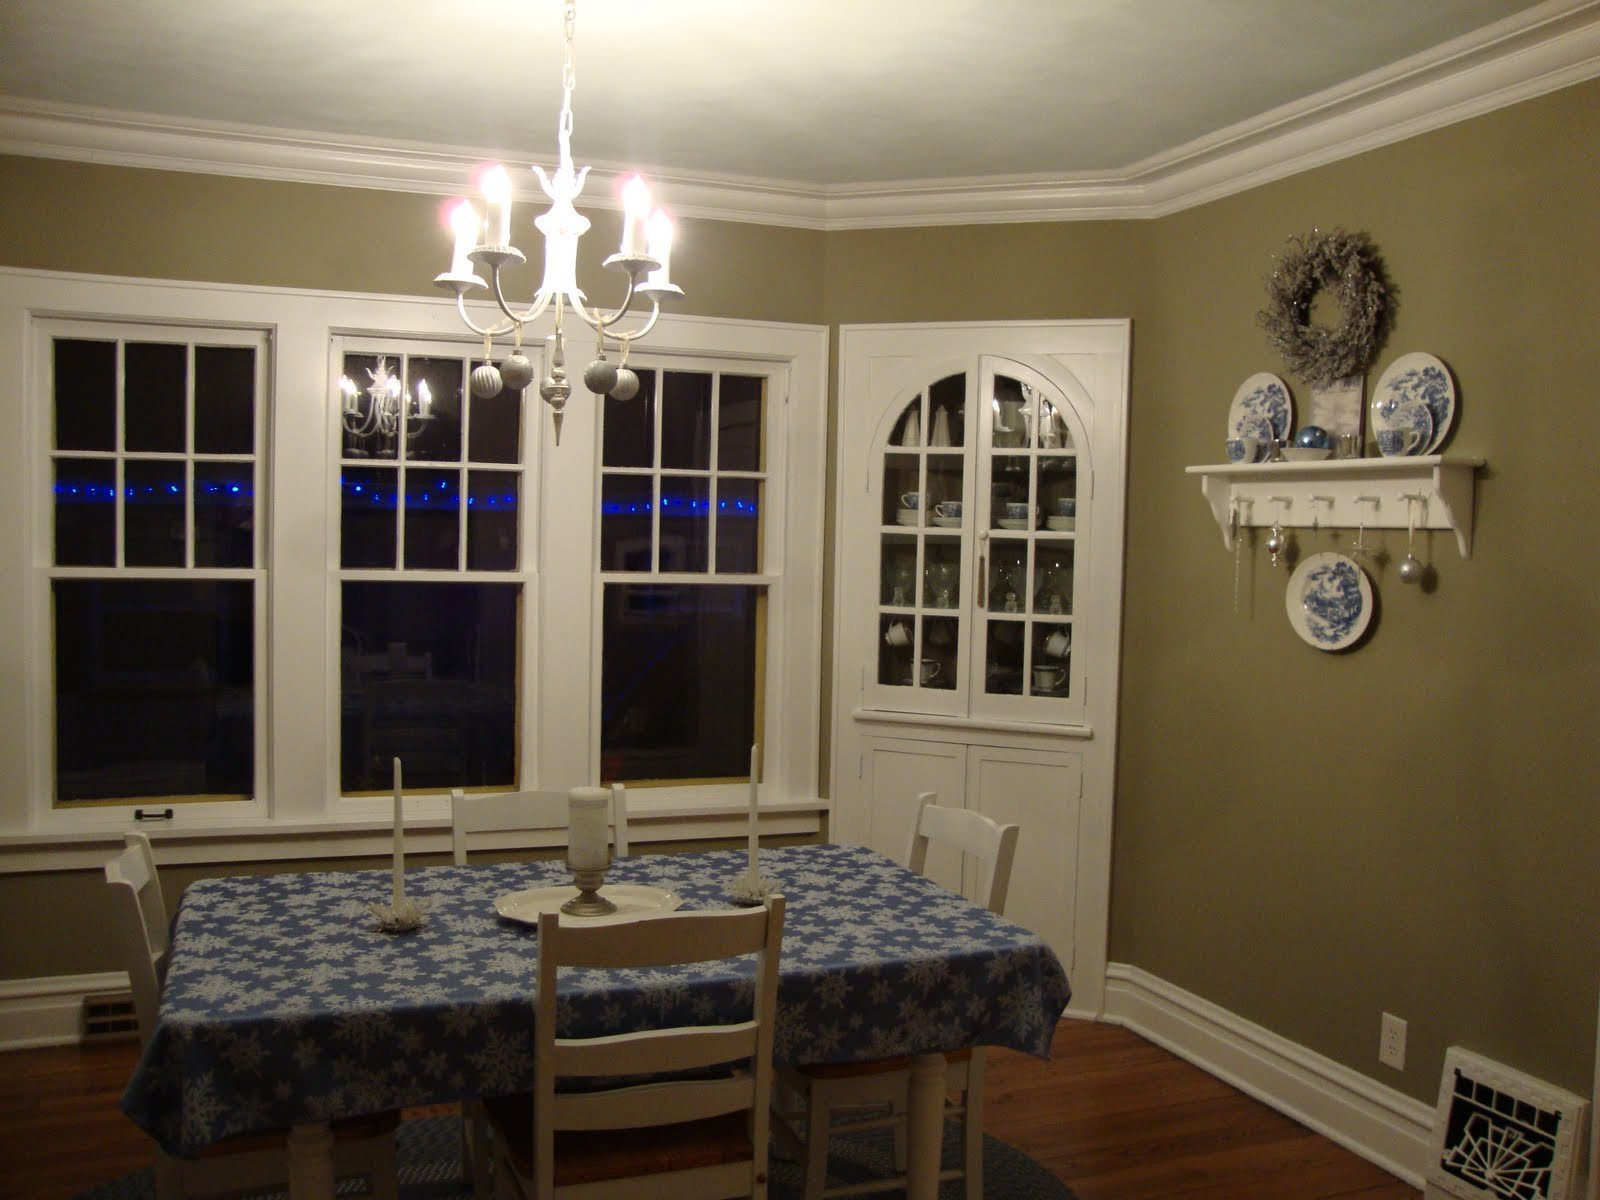 Wall Decor for Dining Rooms Awesome J&k Homestead Dining Room Decor Wall 1